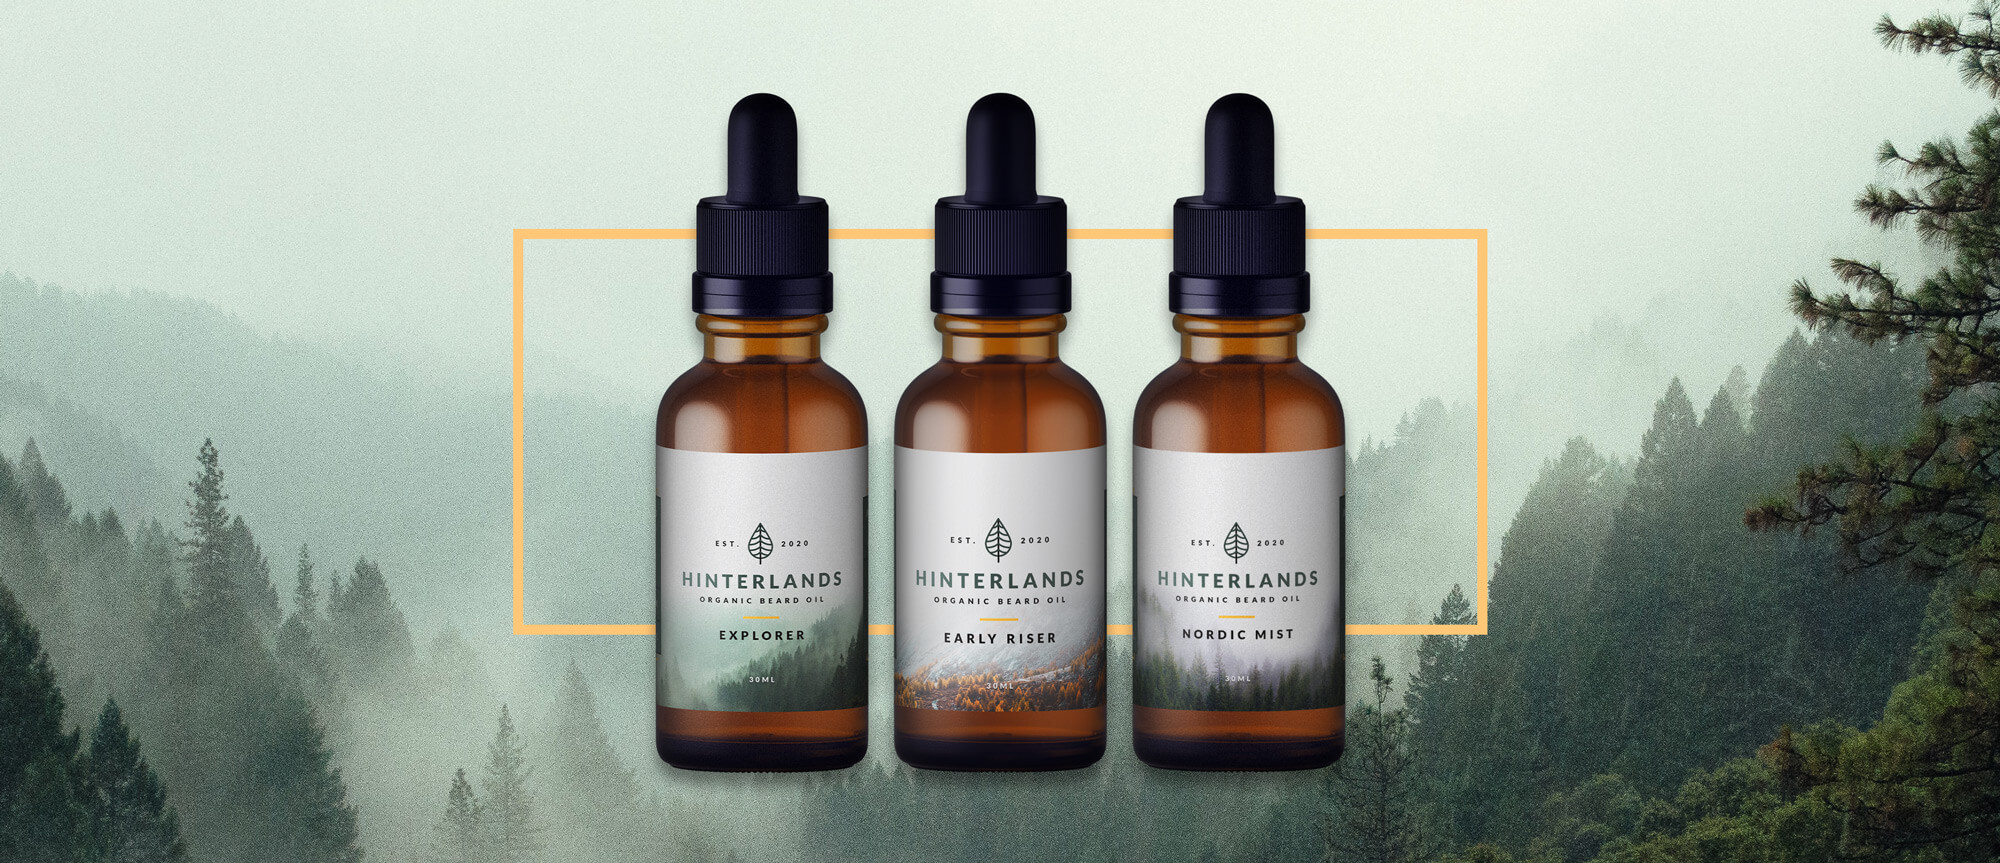 hinterlands beard oil products